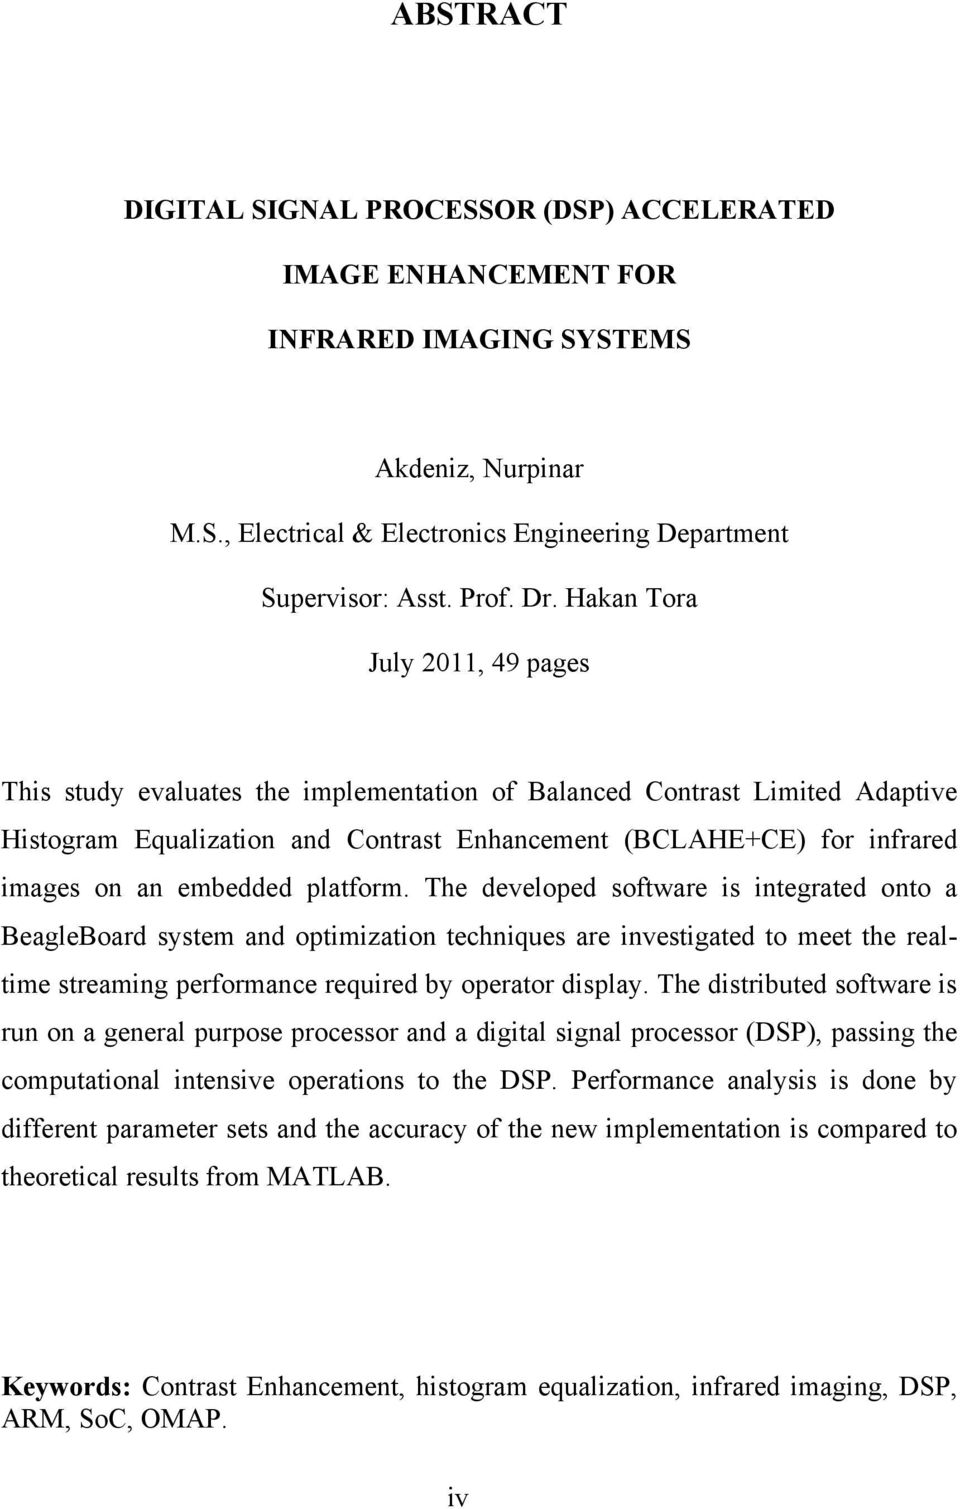 embedded platform. The developed software is integrated onto a BeagleBoard system and optimization techniques are investigated to meet the realtime streaming performance required by operator display.